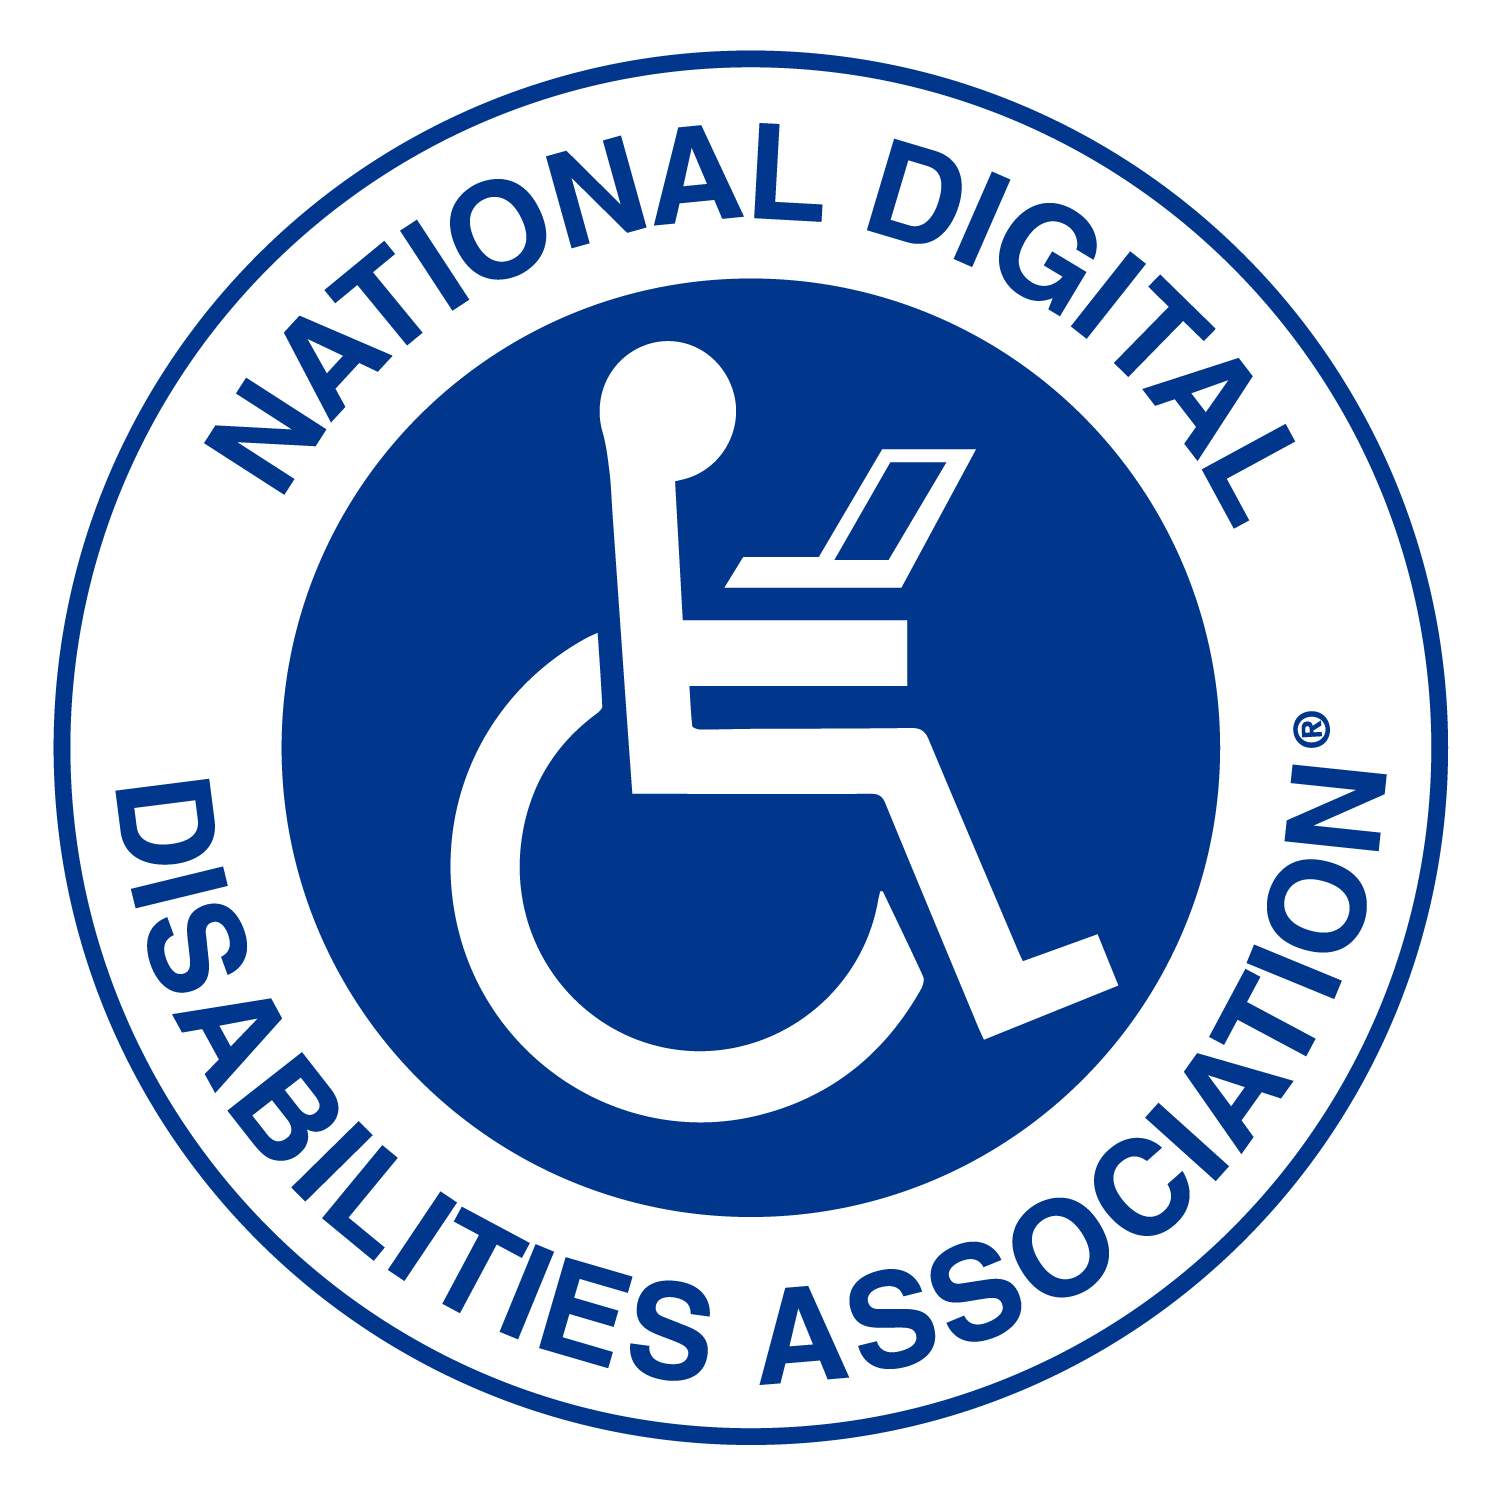 National Digital Disabilities Association